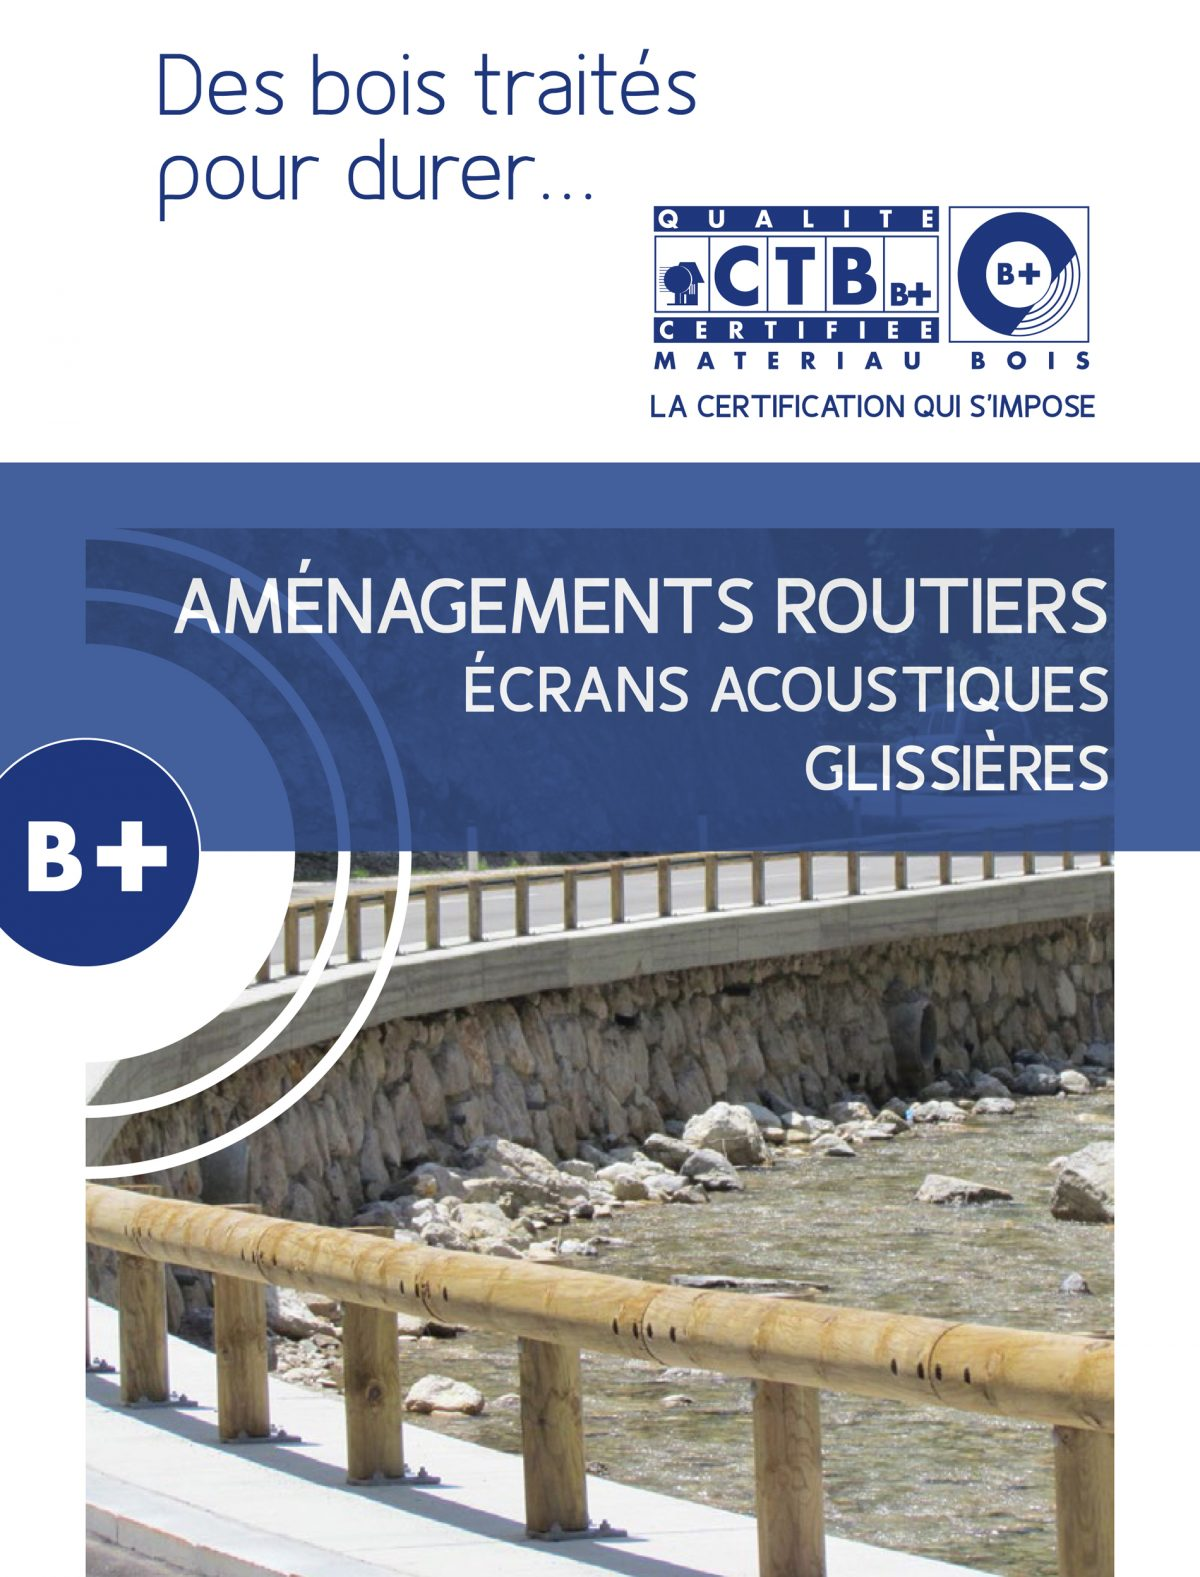 CTBBPLUS_AMEN_ROUTIERS-1